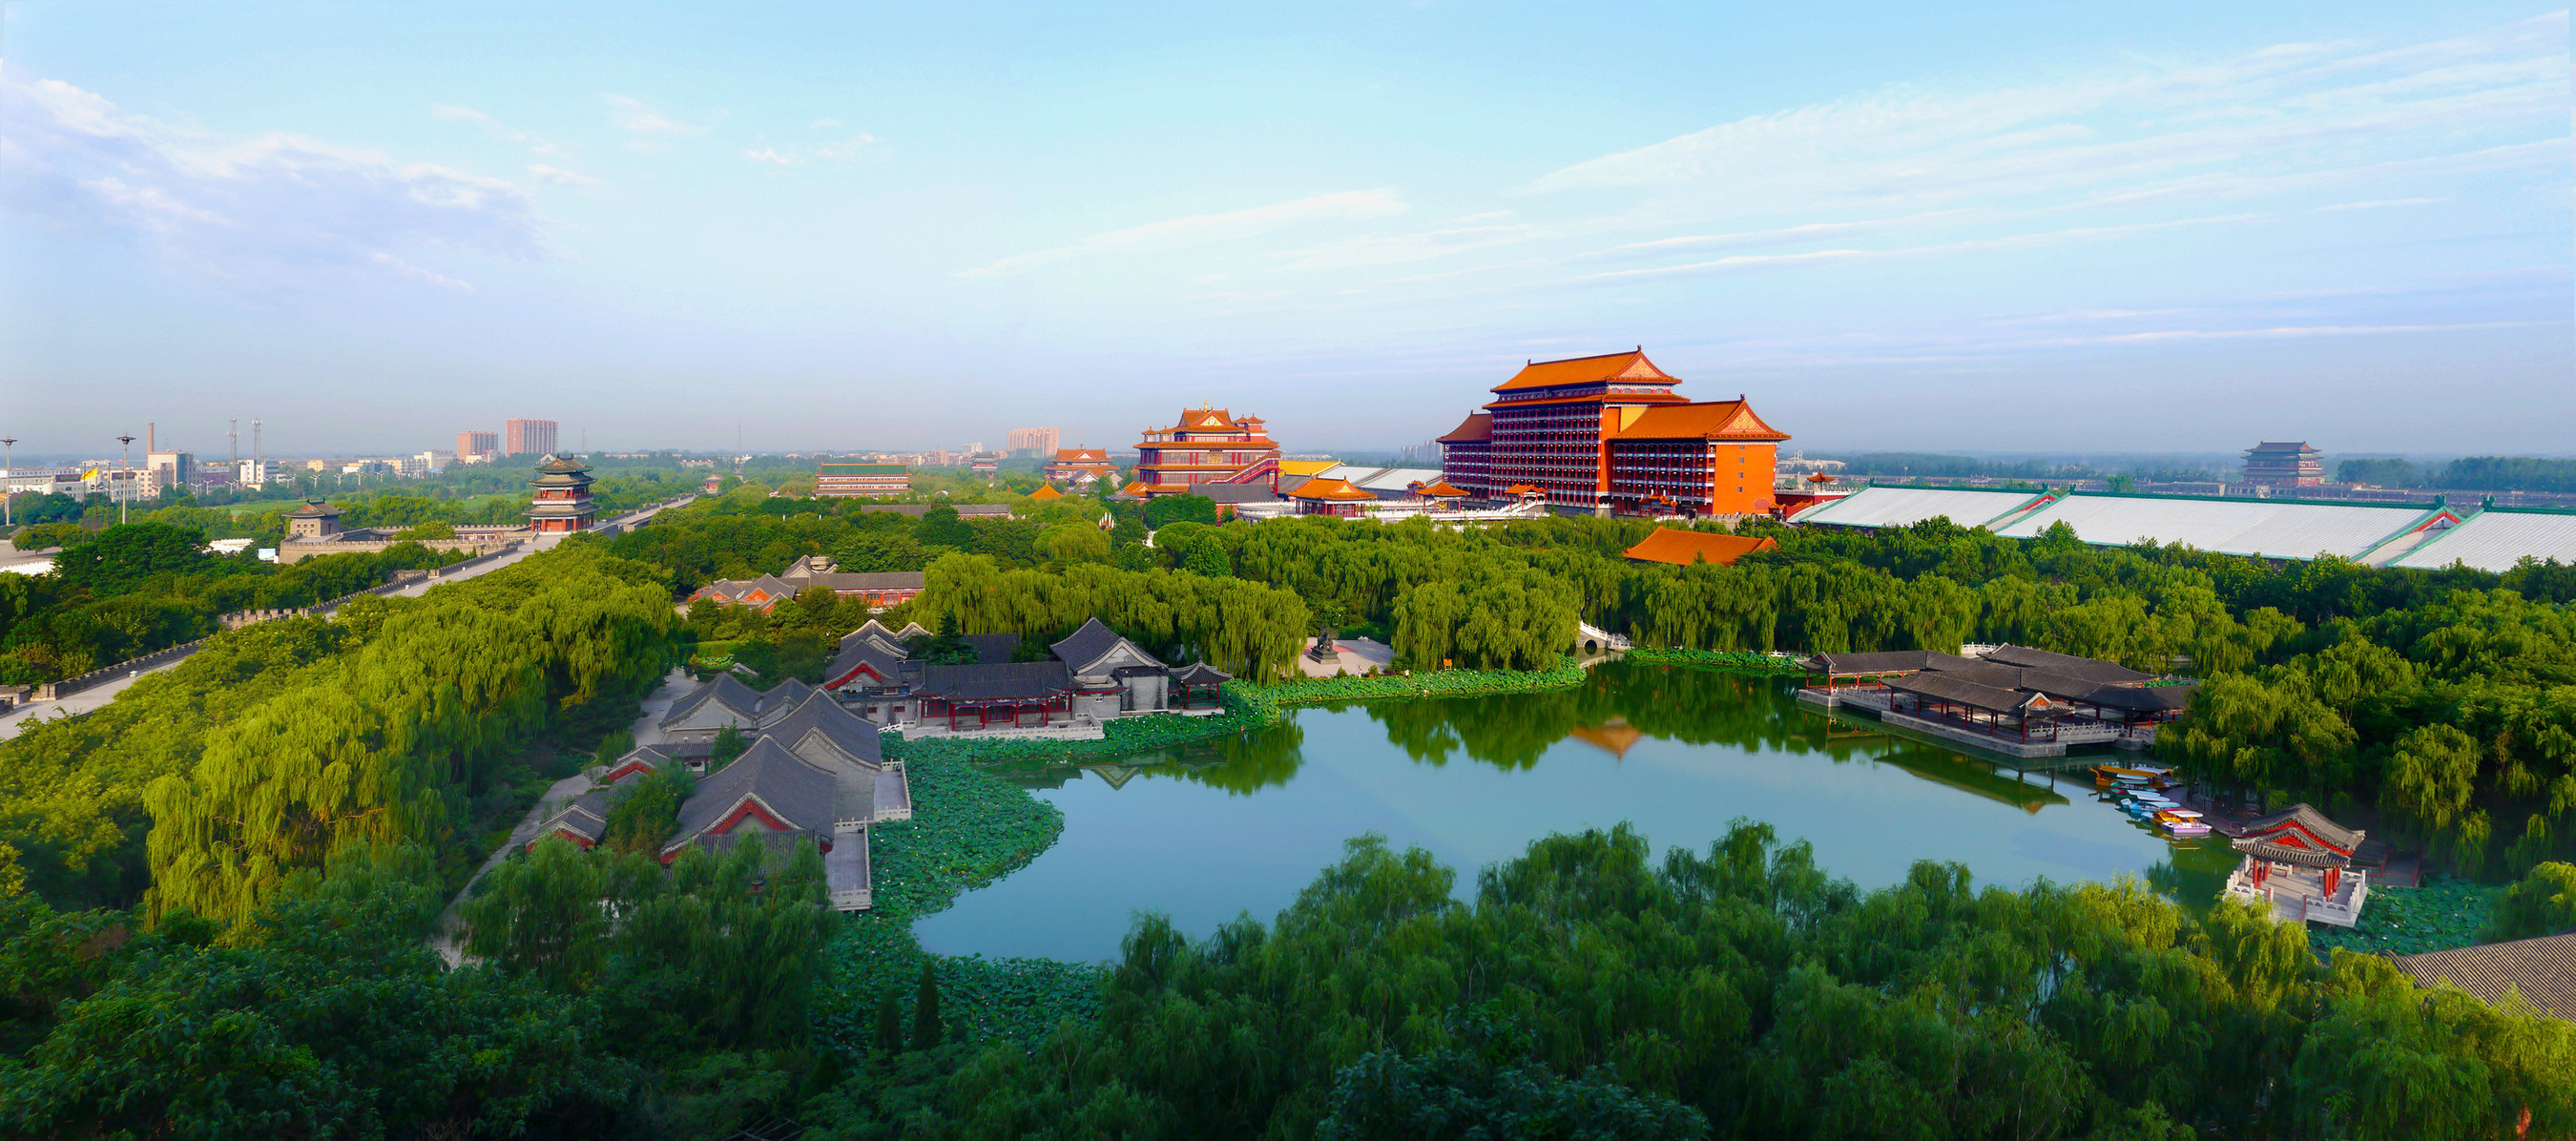 The 2016 China-US Motion Picture Summit will take place in Grand Epoch City, China.